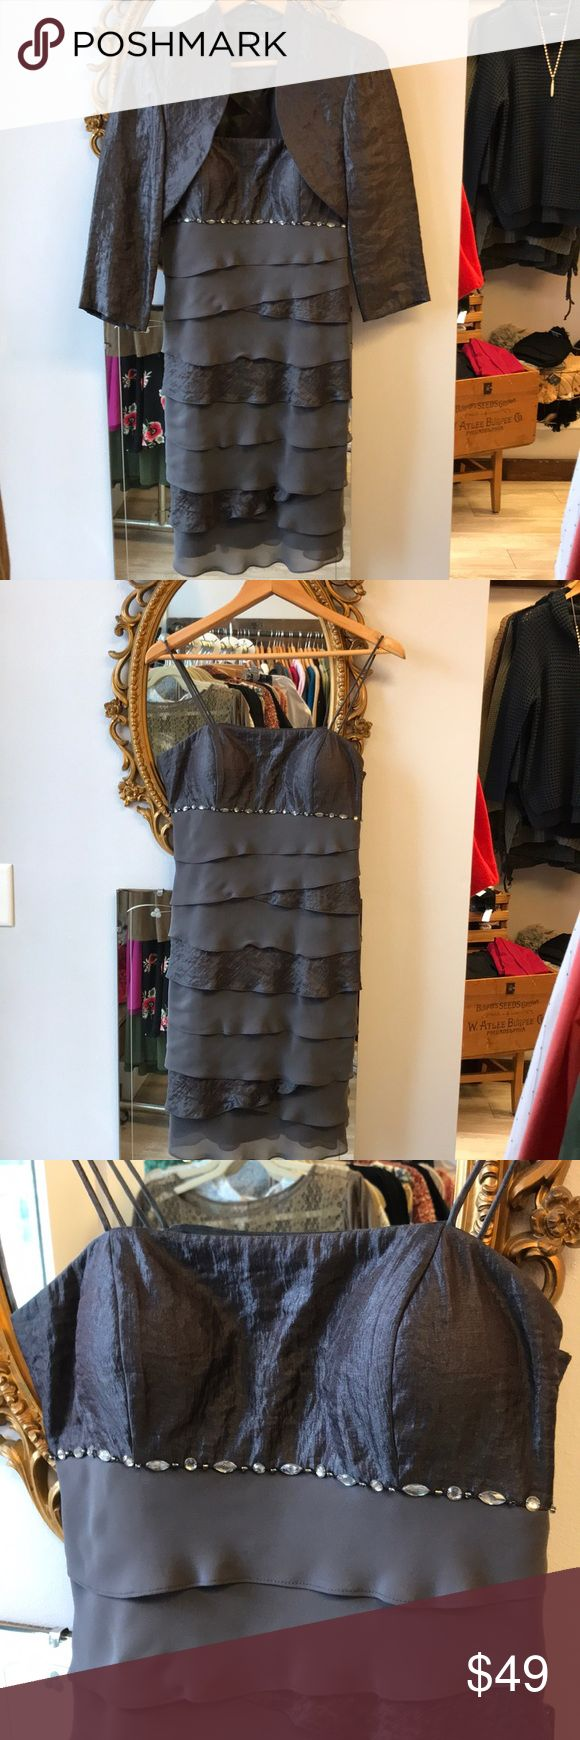 Gray party dress Fun gray party dress with flattering layers and bejeweled accent under the bust. Built in padding and 3/4 length jacket included. Perfect for a holiday party or wedding guest dress S L Fashion Dresses Midi